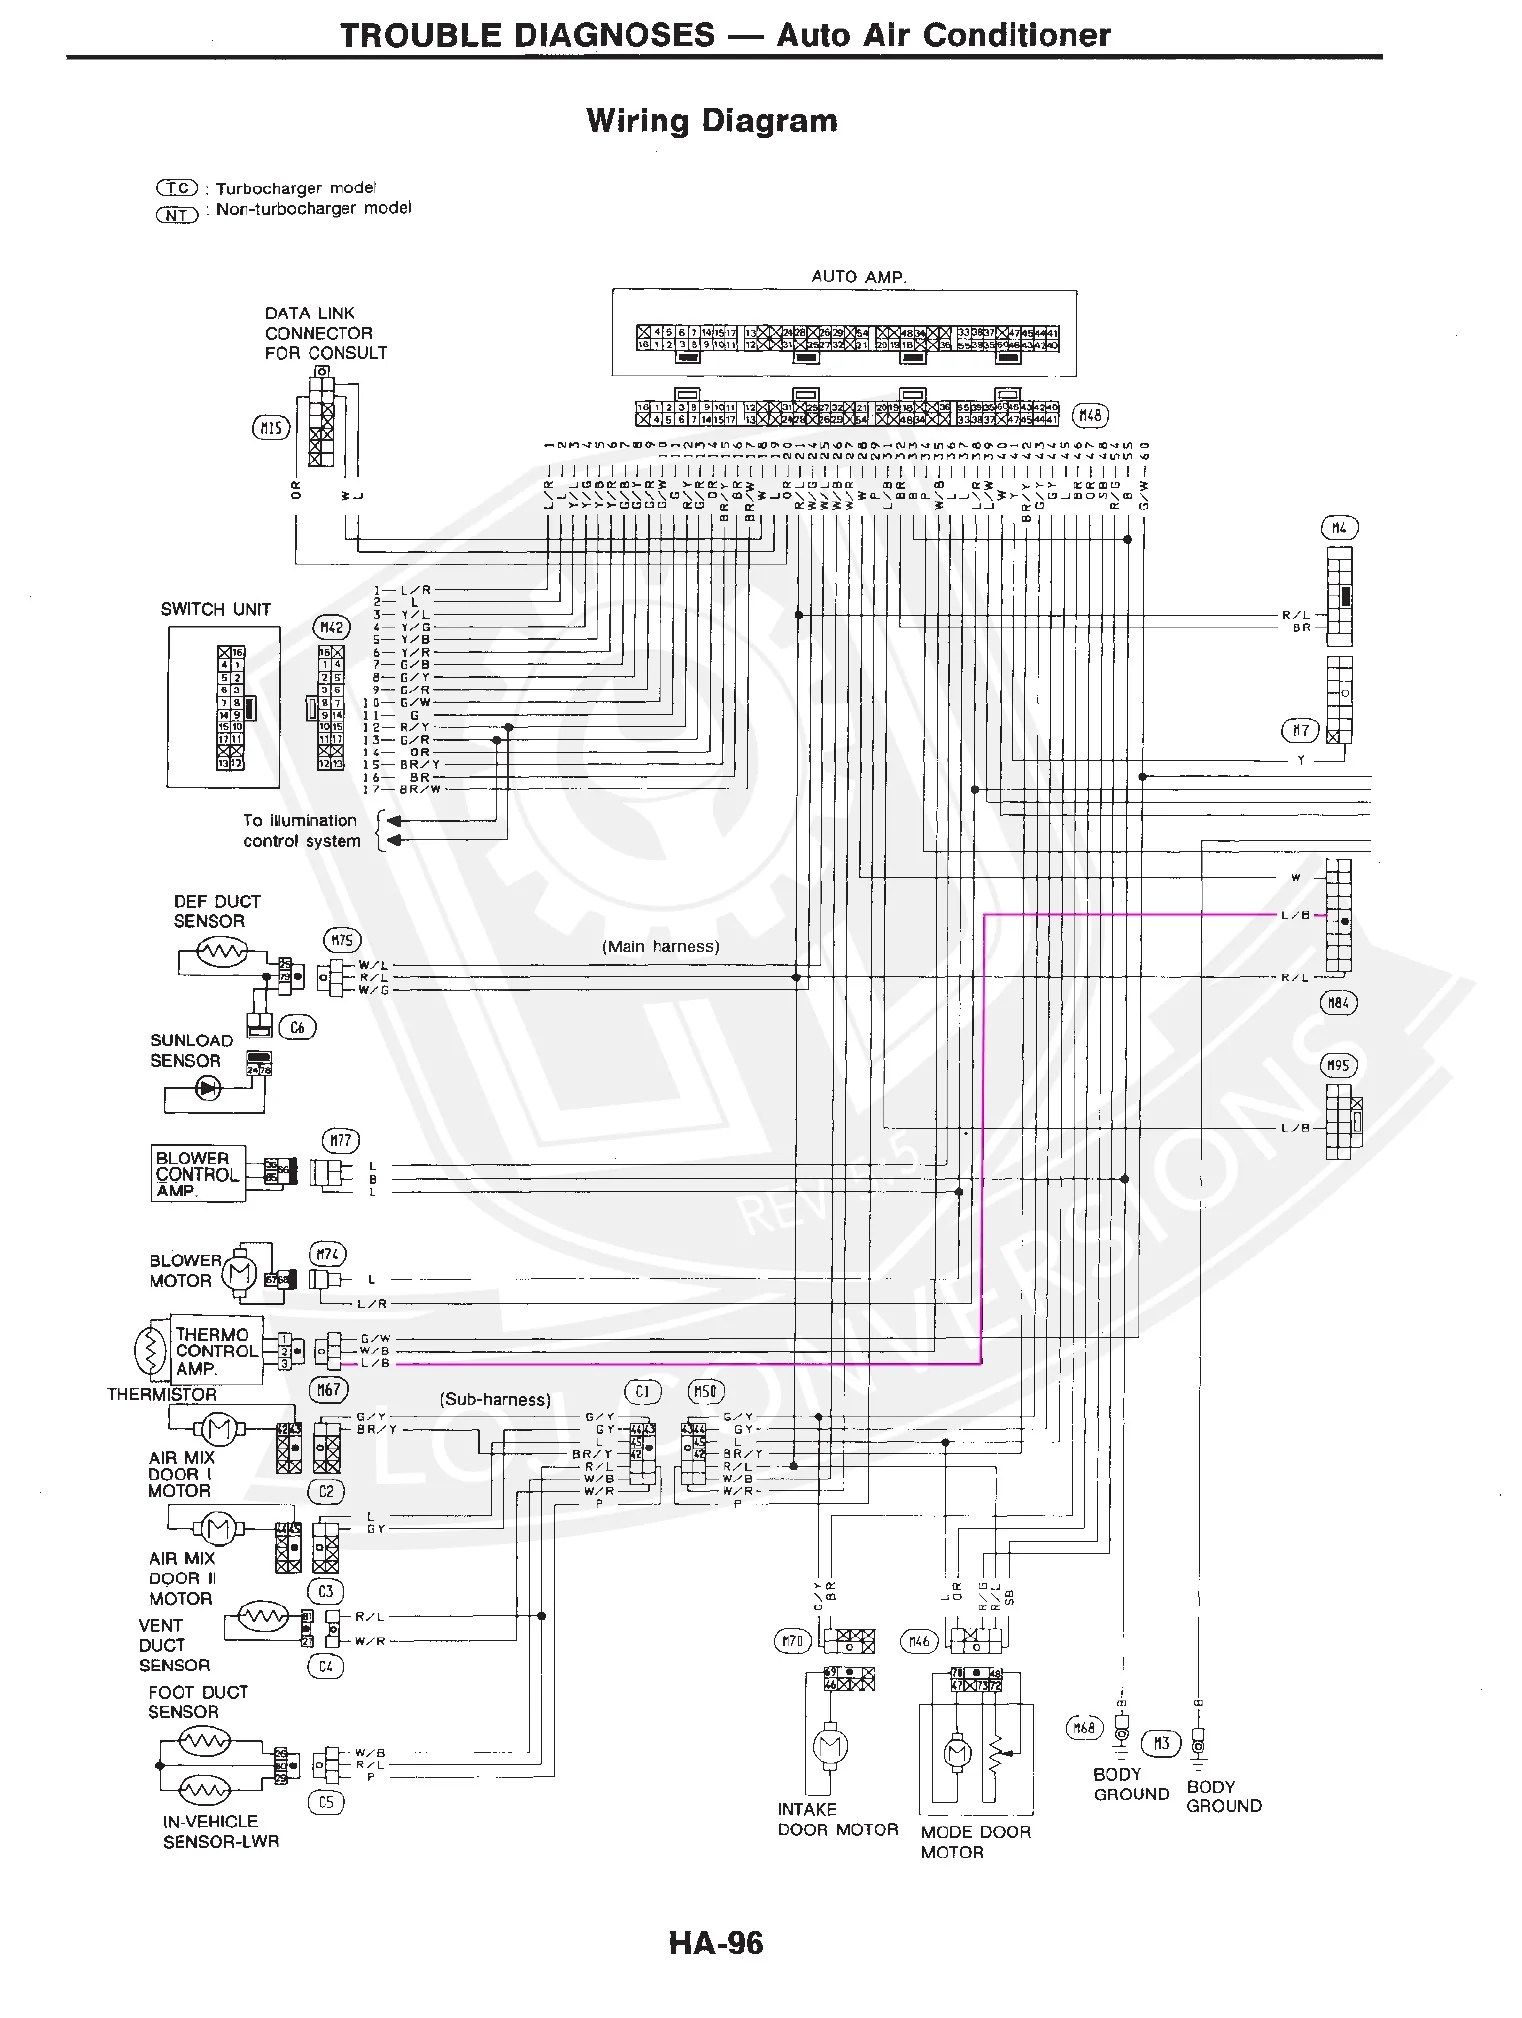 hight resolution of wiring diagram also 1990 nissan 300zx engine wiring harness further 1990 nissan 300zx wiring harness diagram